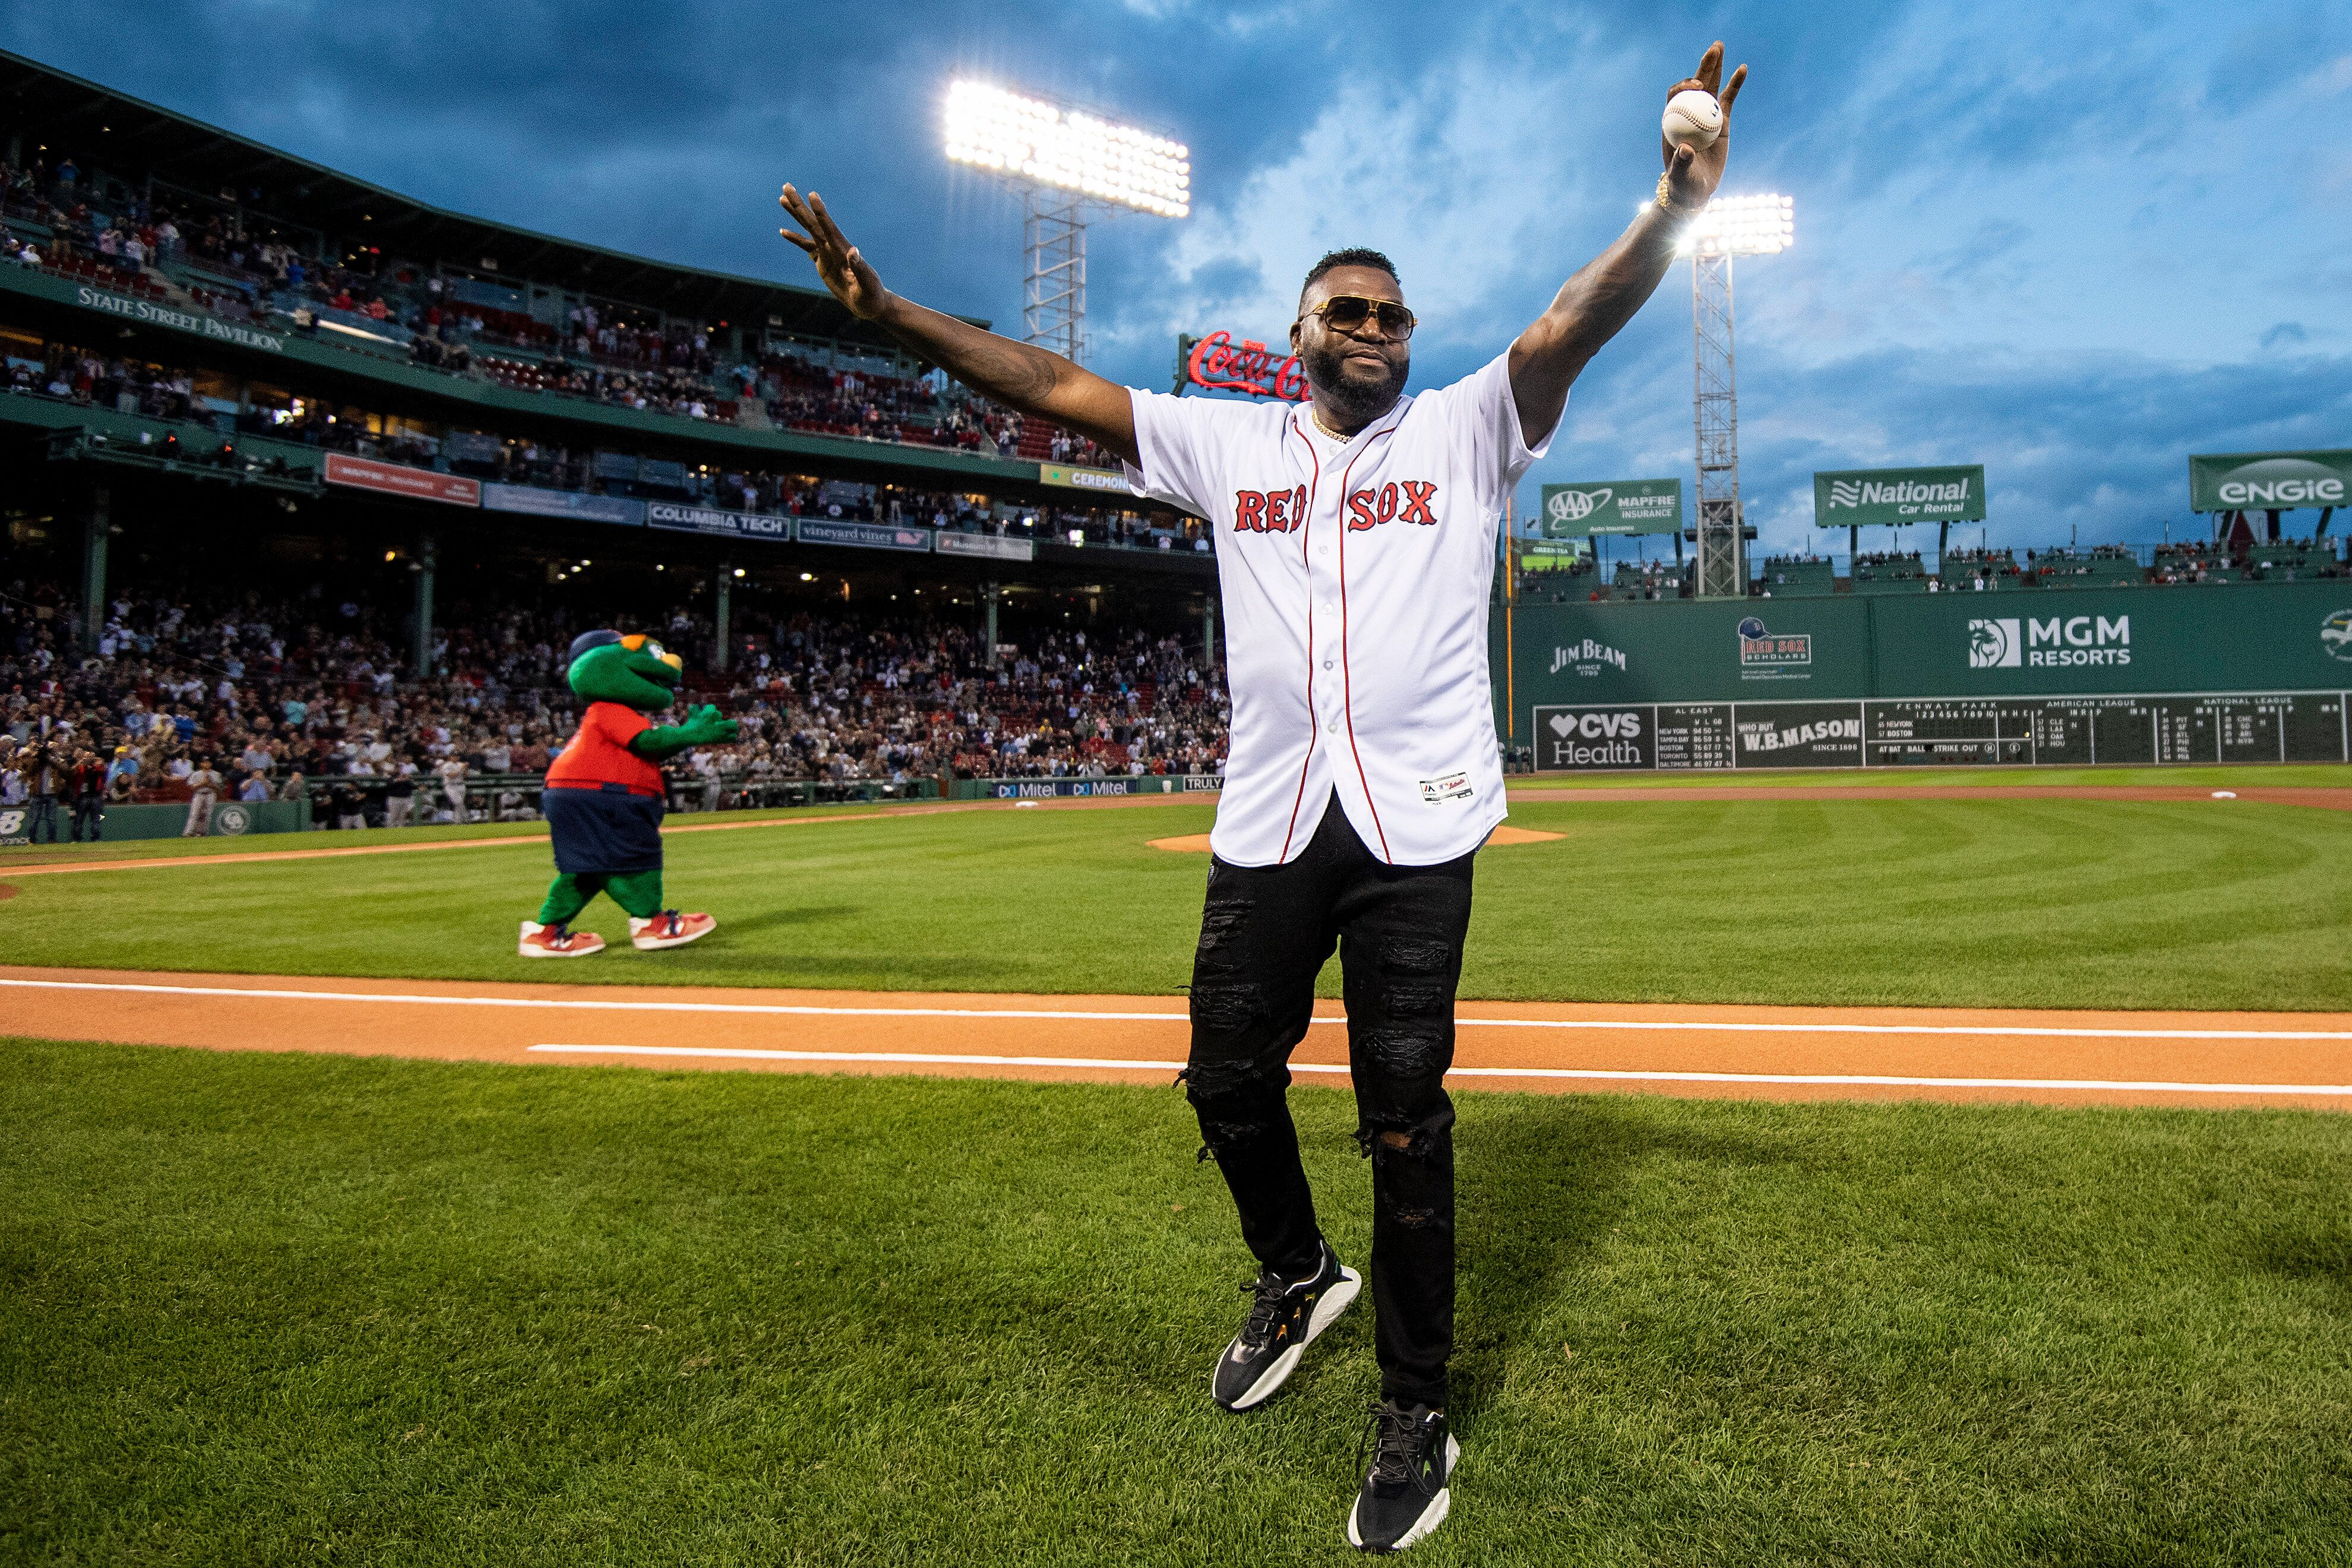 Former designated hitter David Ortiz of the Boston Red Sox is introduced before throwing out a ceremonial first pitch as he r